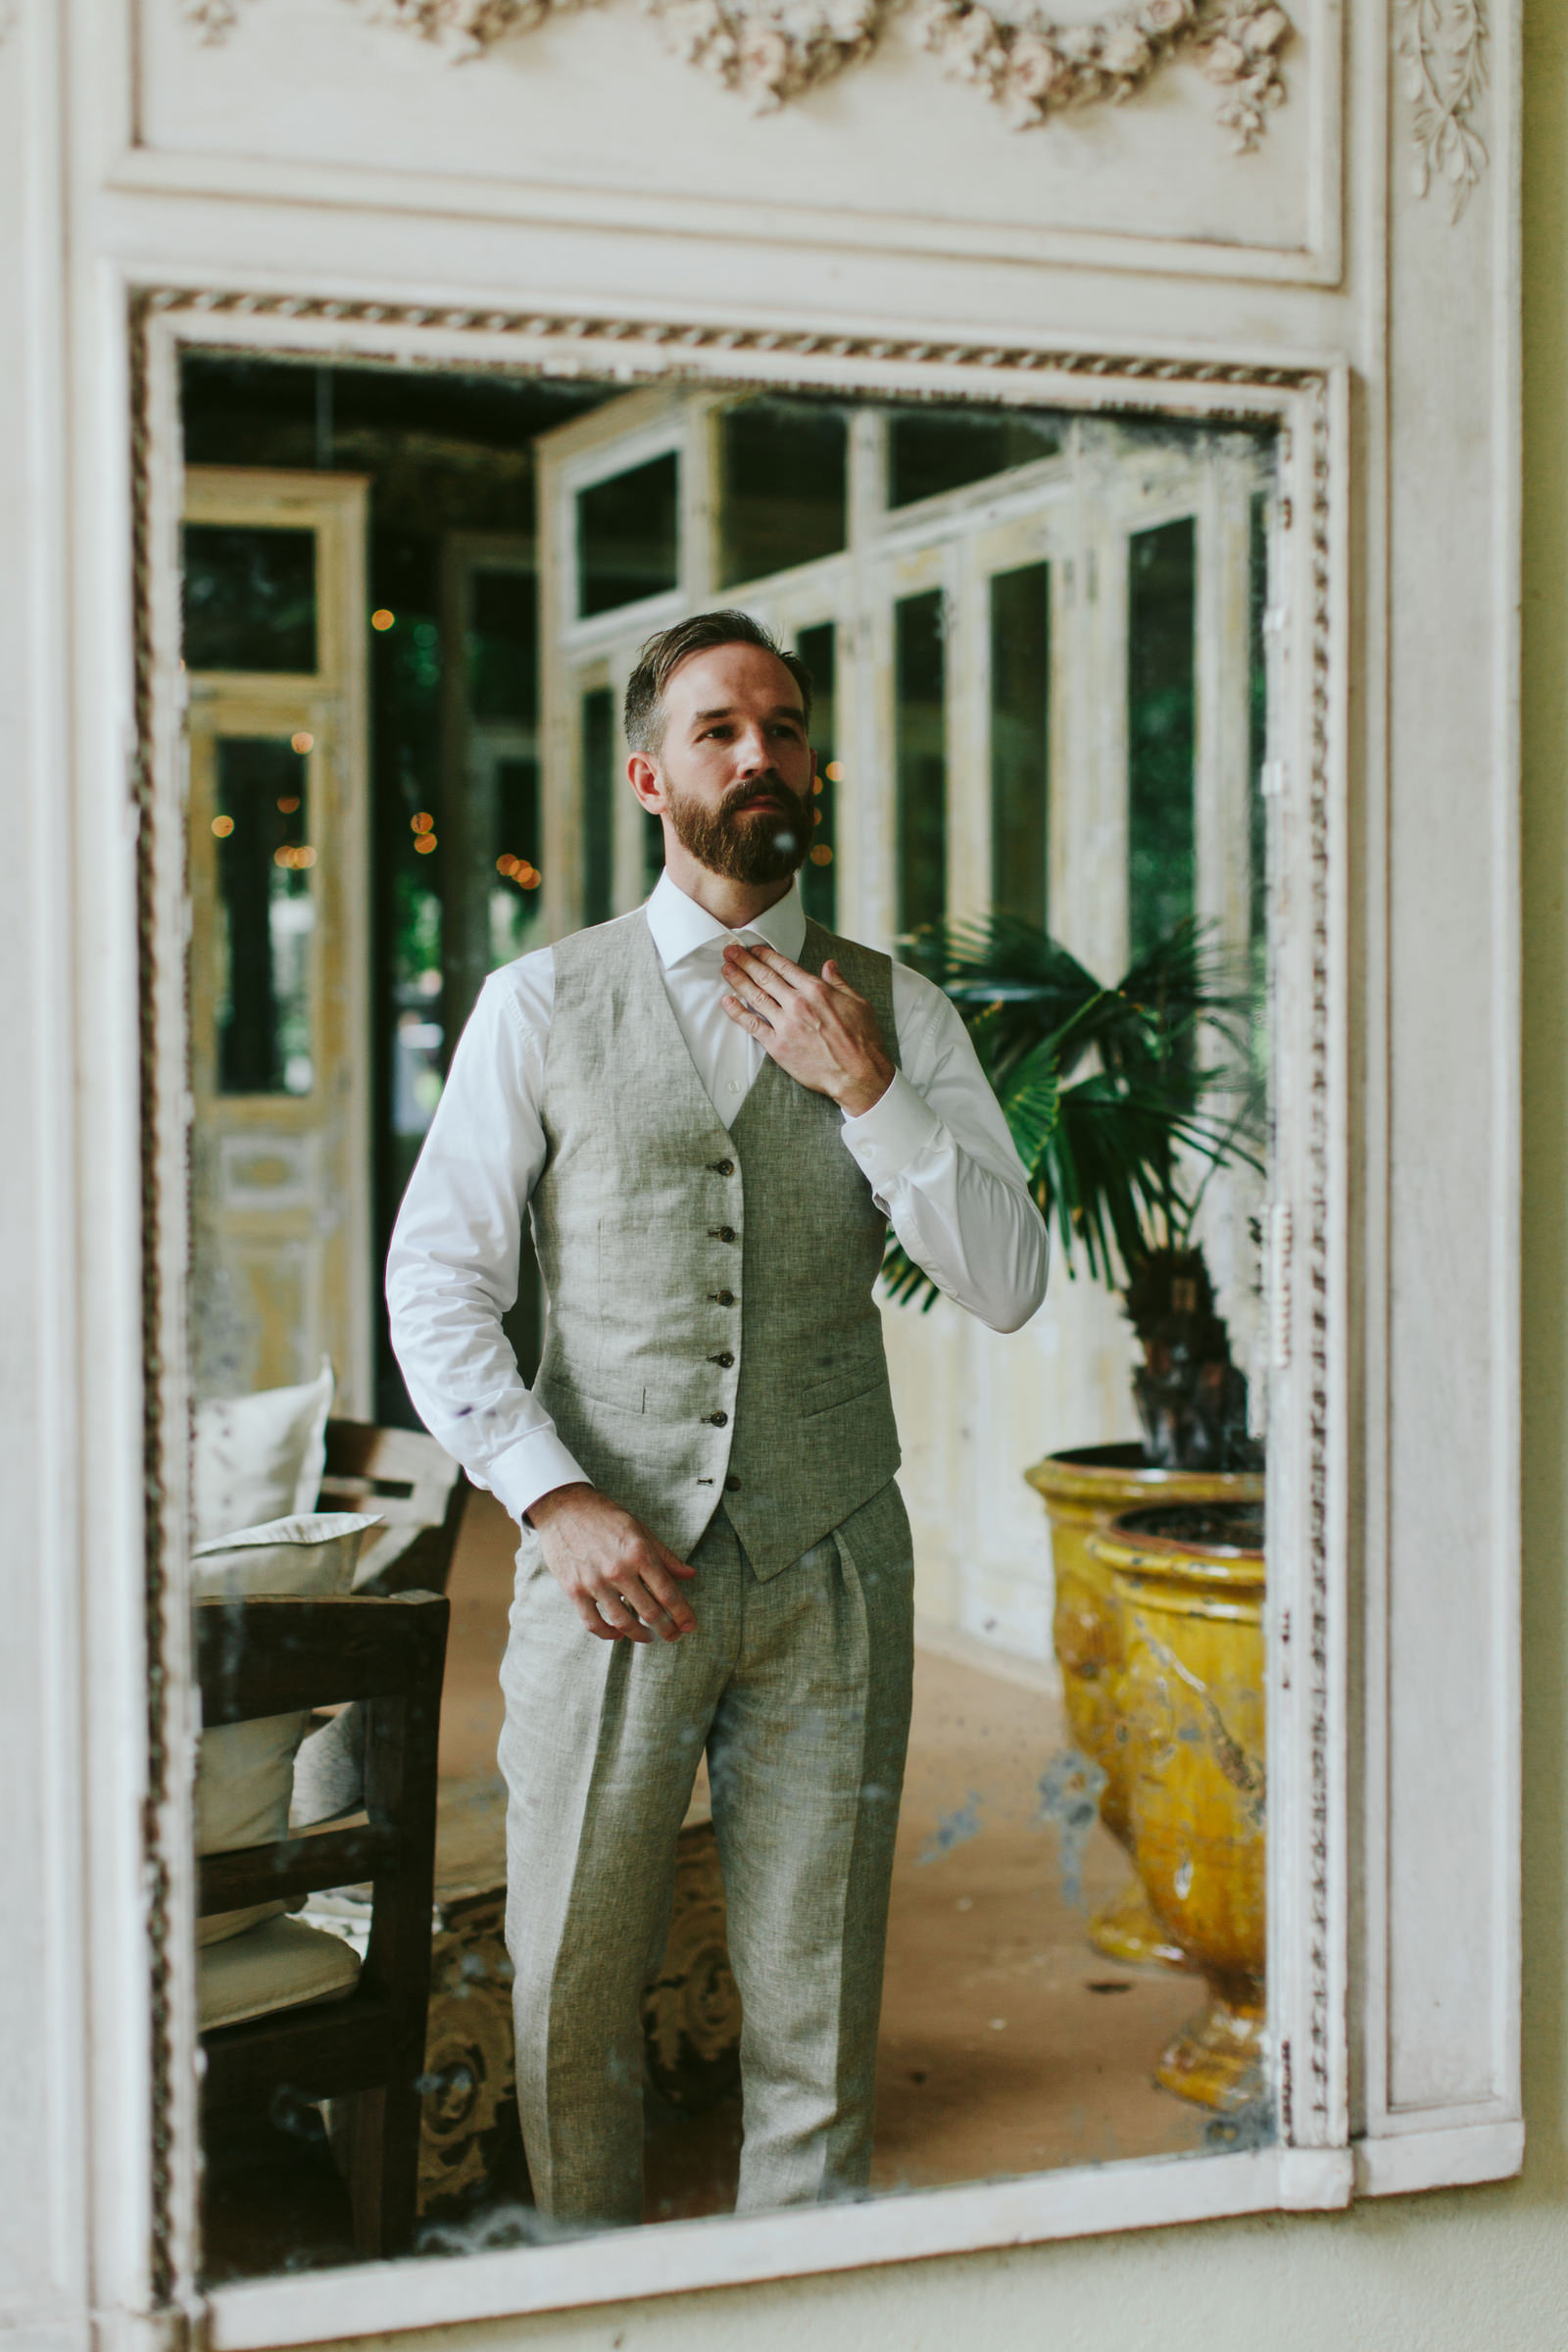 Groom gets dressed in front of mirror - photo by Melia Lucida